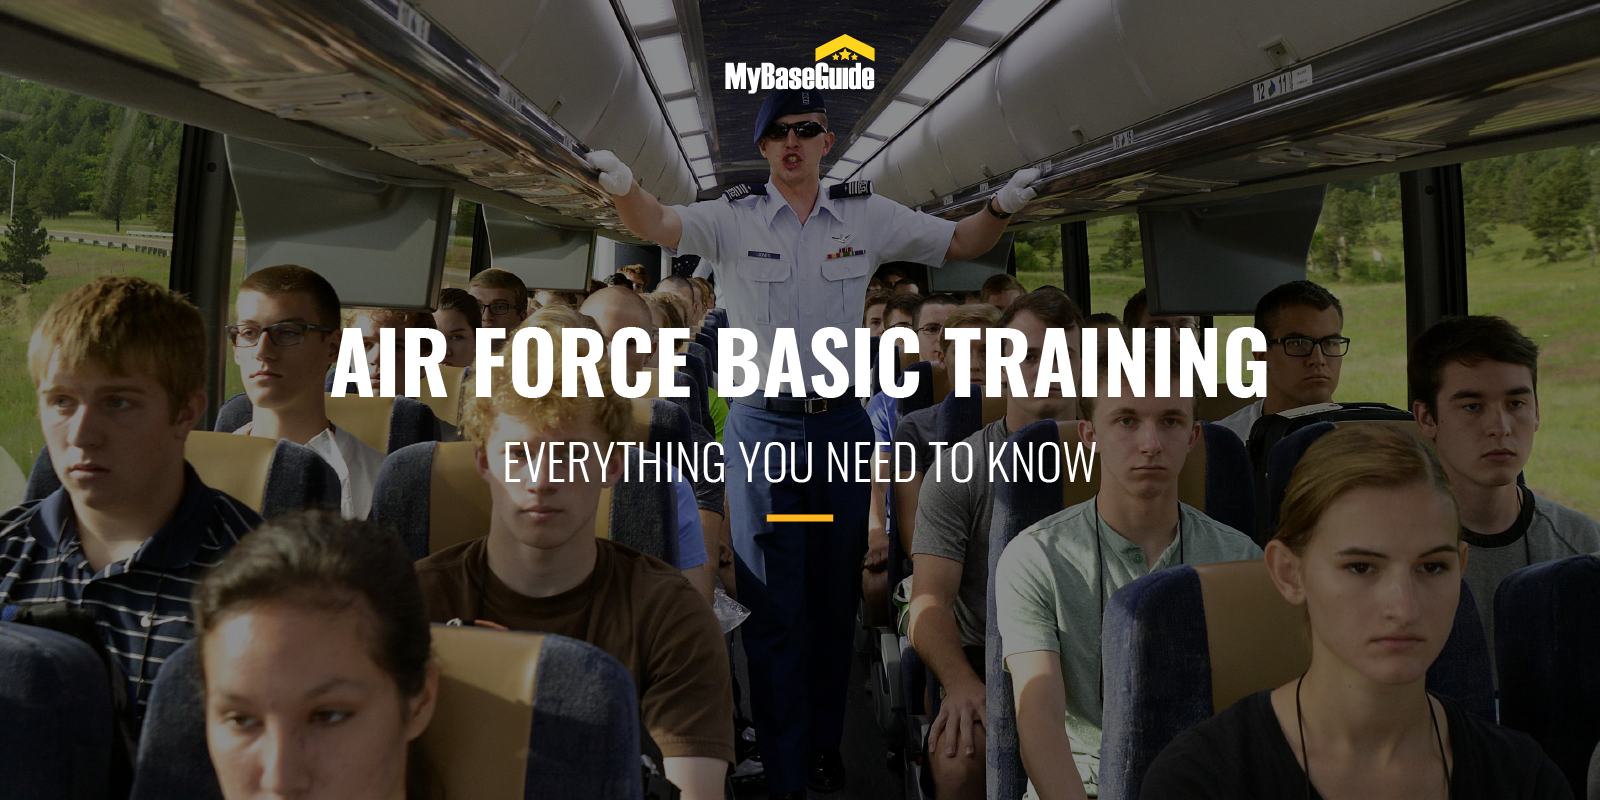 Air Force Basic Training: Everything You Need to Know